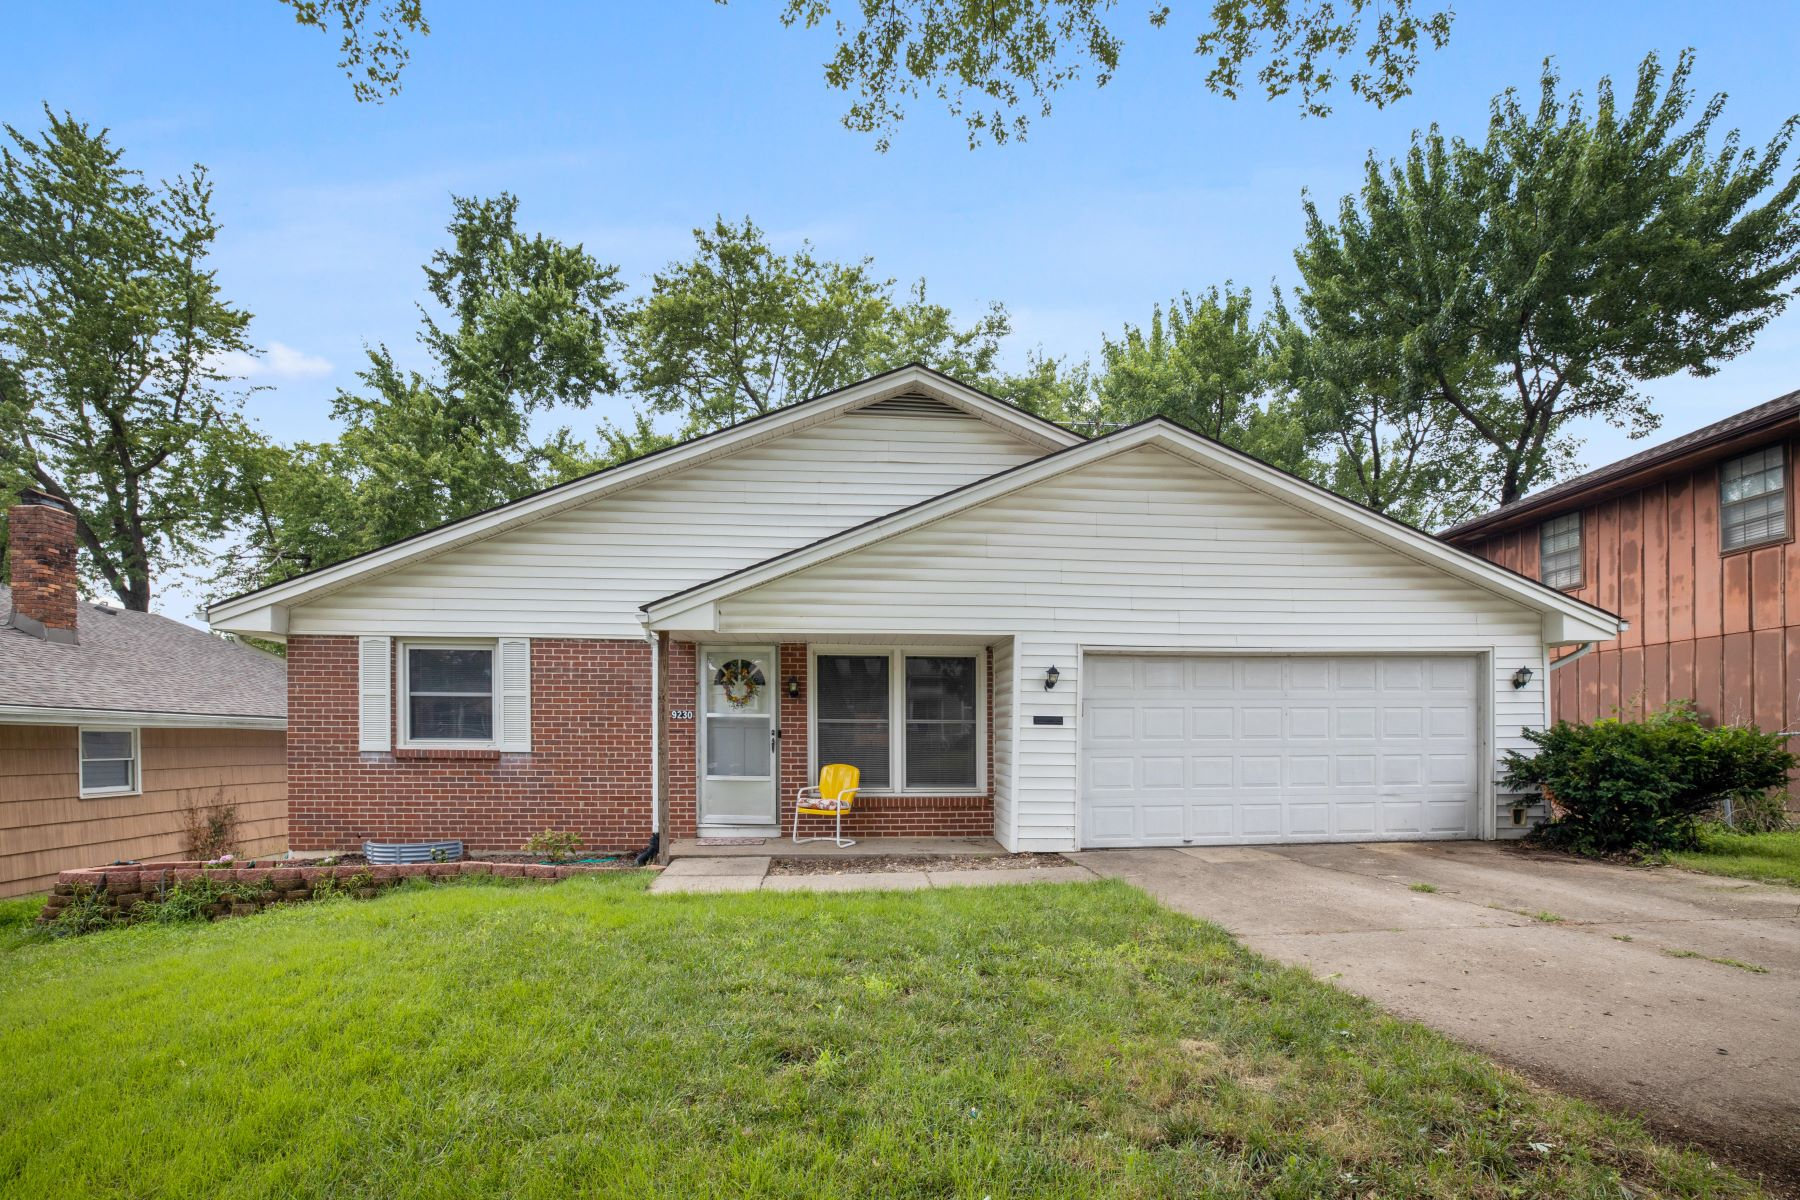 Single Family Homes for Sale at Move-in ready ranch 9230 Main Street Kansas City, Missouri 64114 United States